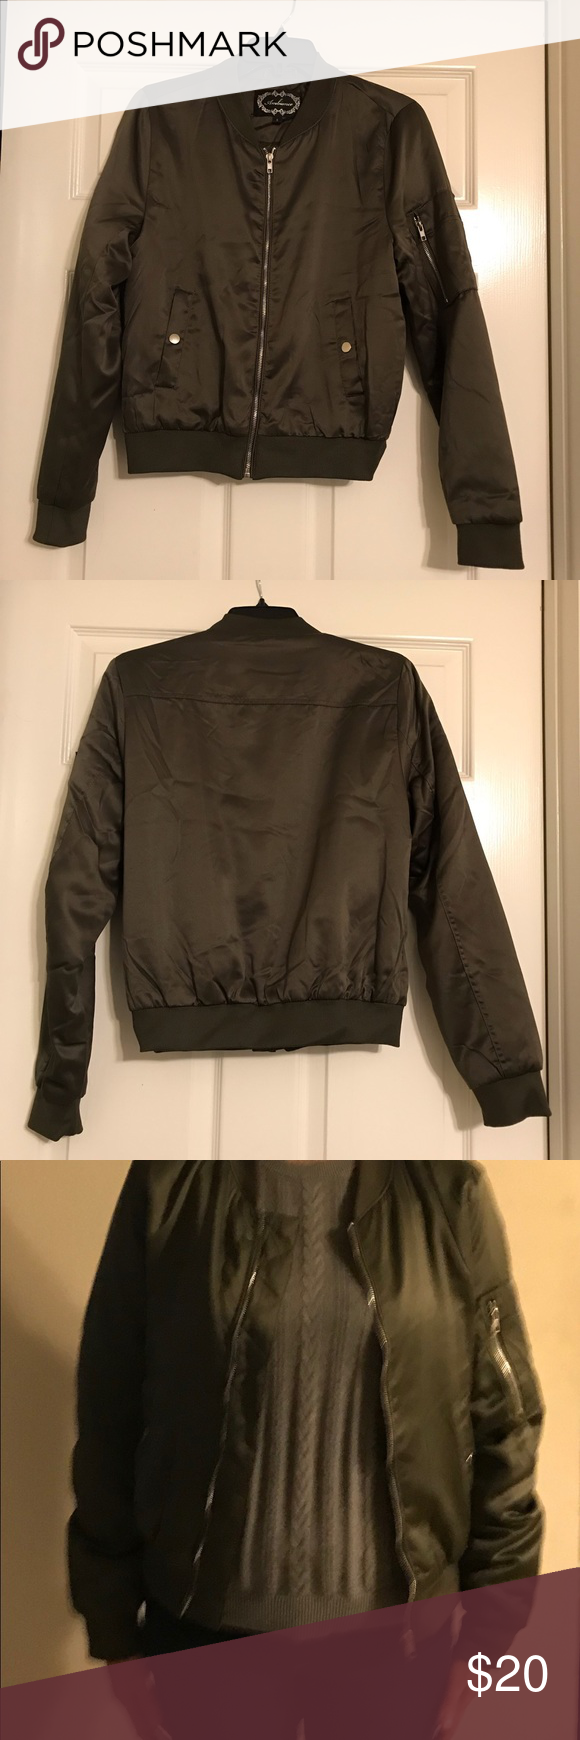 Green Bomber Jacket Warm Olive Green Bomber Jacket Very Comfy Only Used Once Excellent Conditio Green Bomber Jacket Olive Green Bomber Jacket Bomber Jacket [ 1740 x 580 Pixel ]